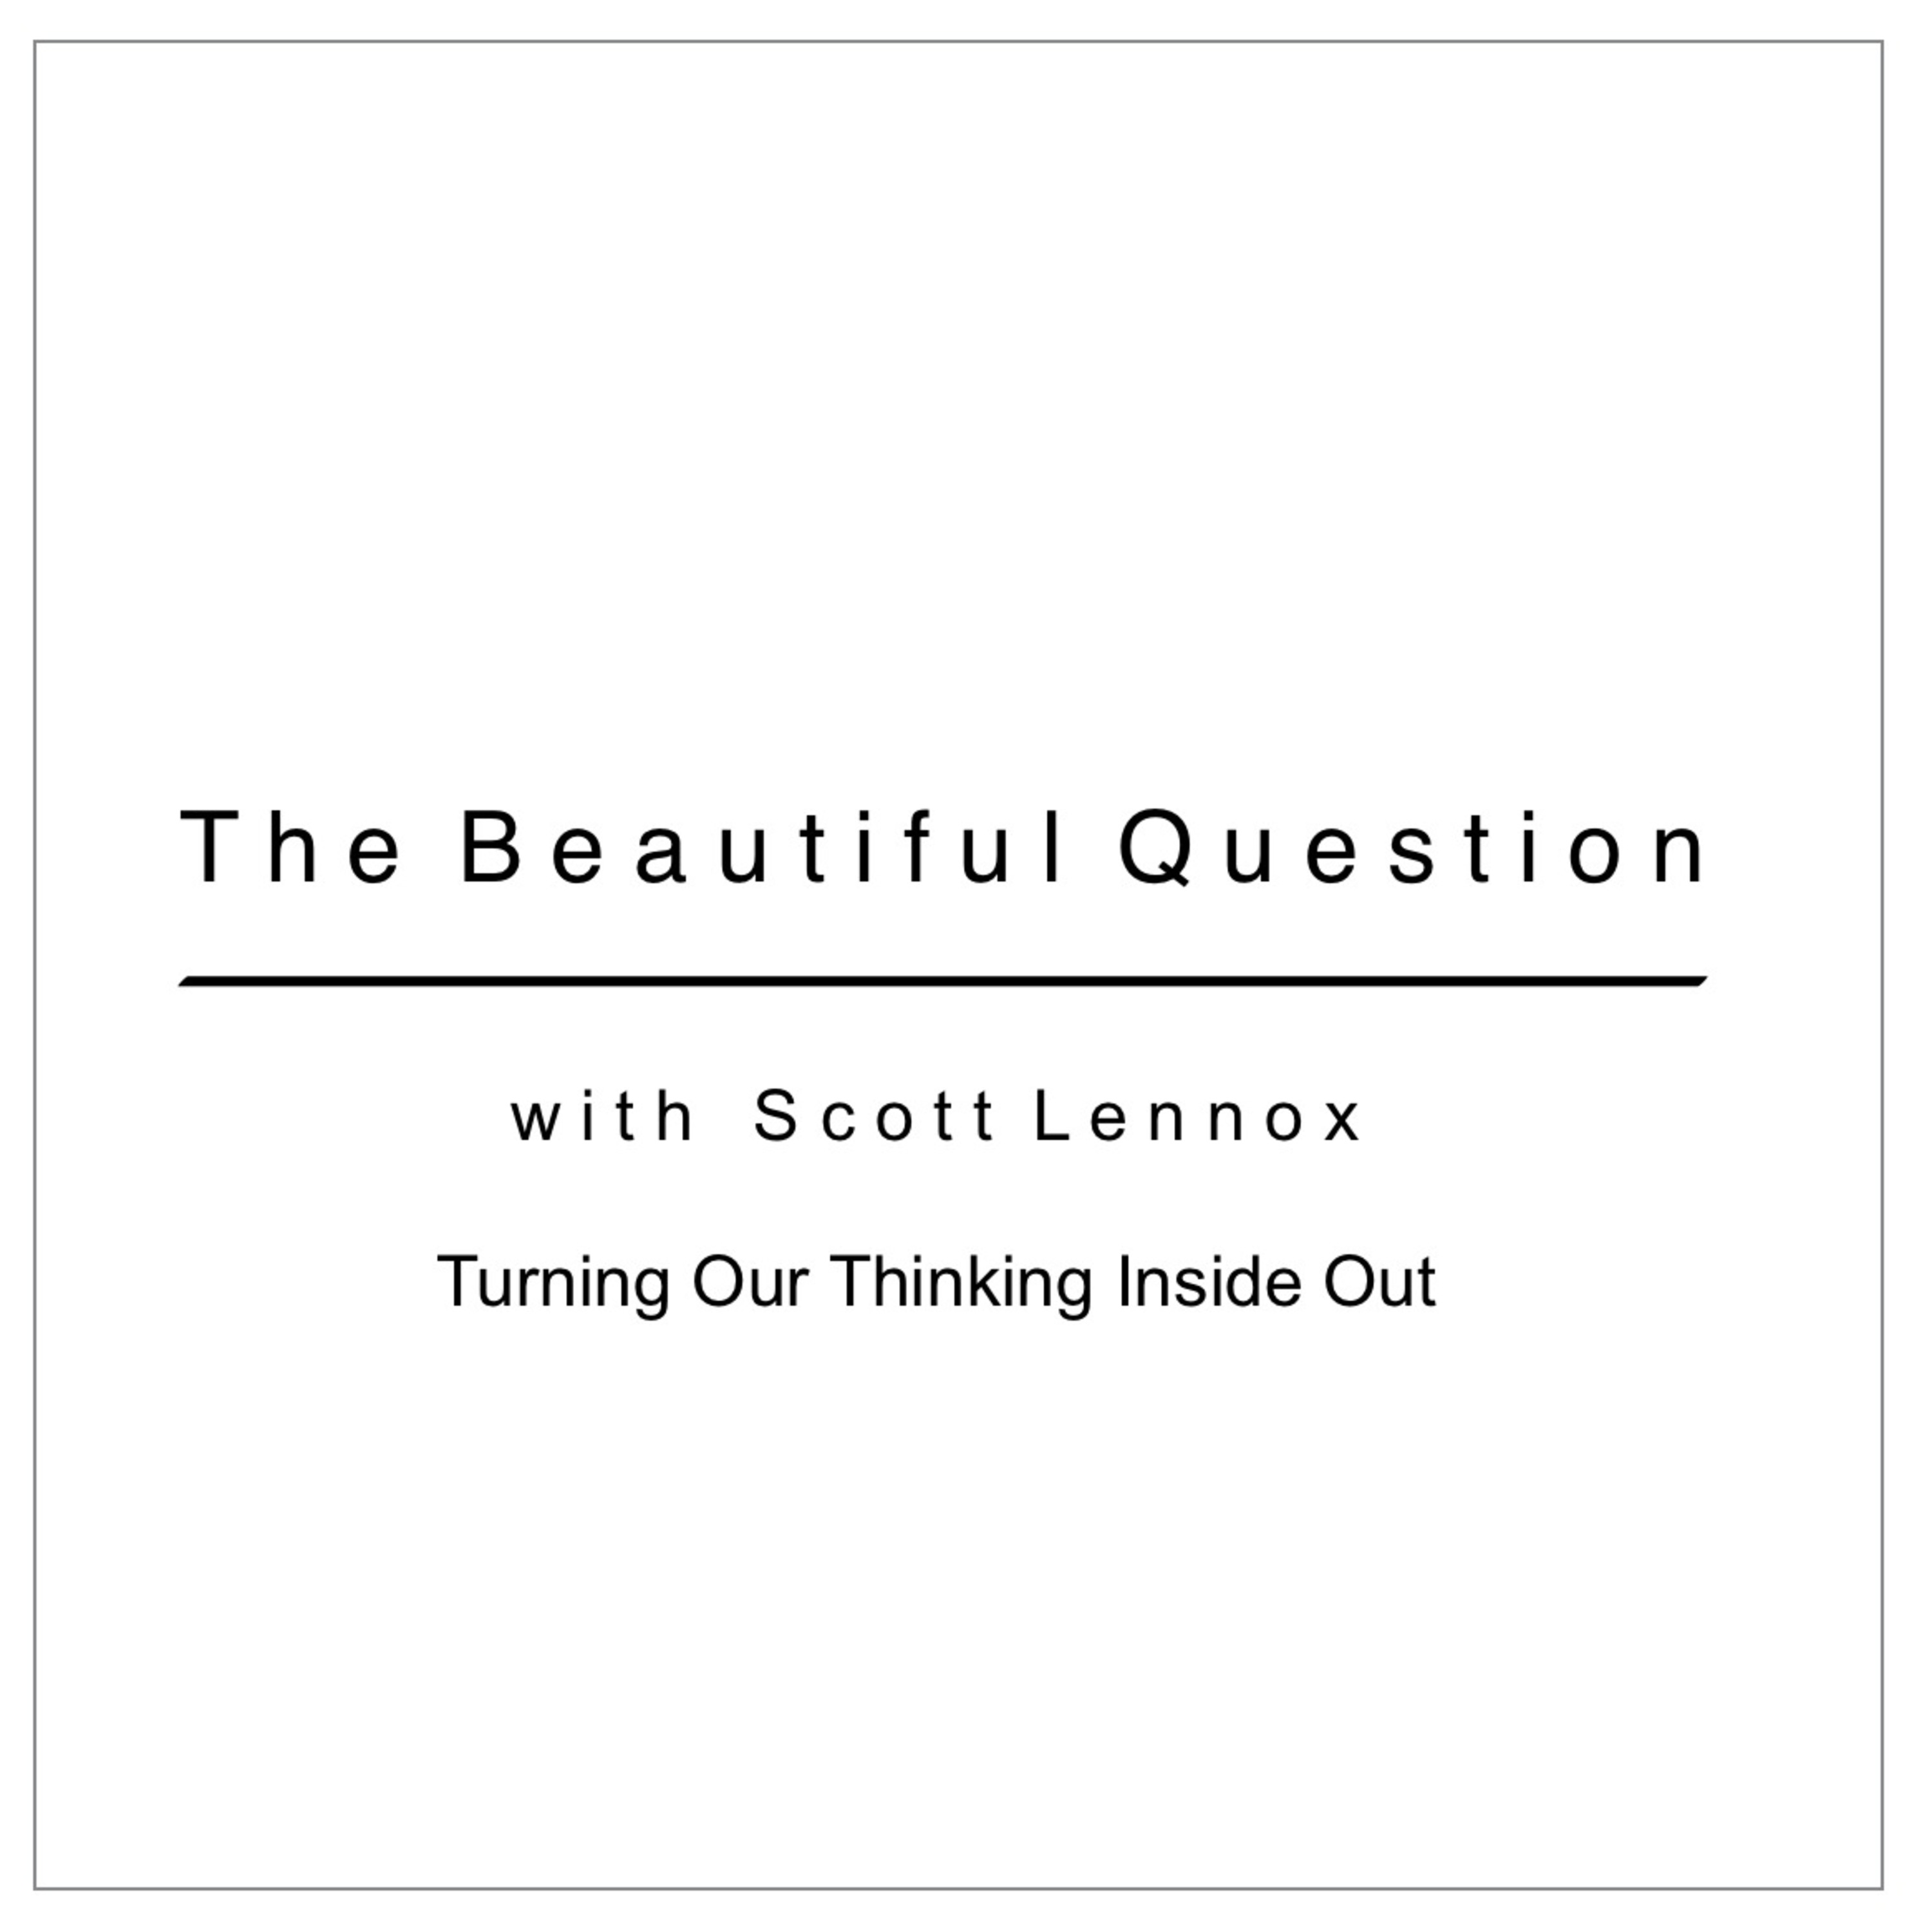 Turning Our Thinking Inside Out